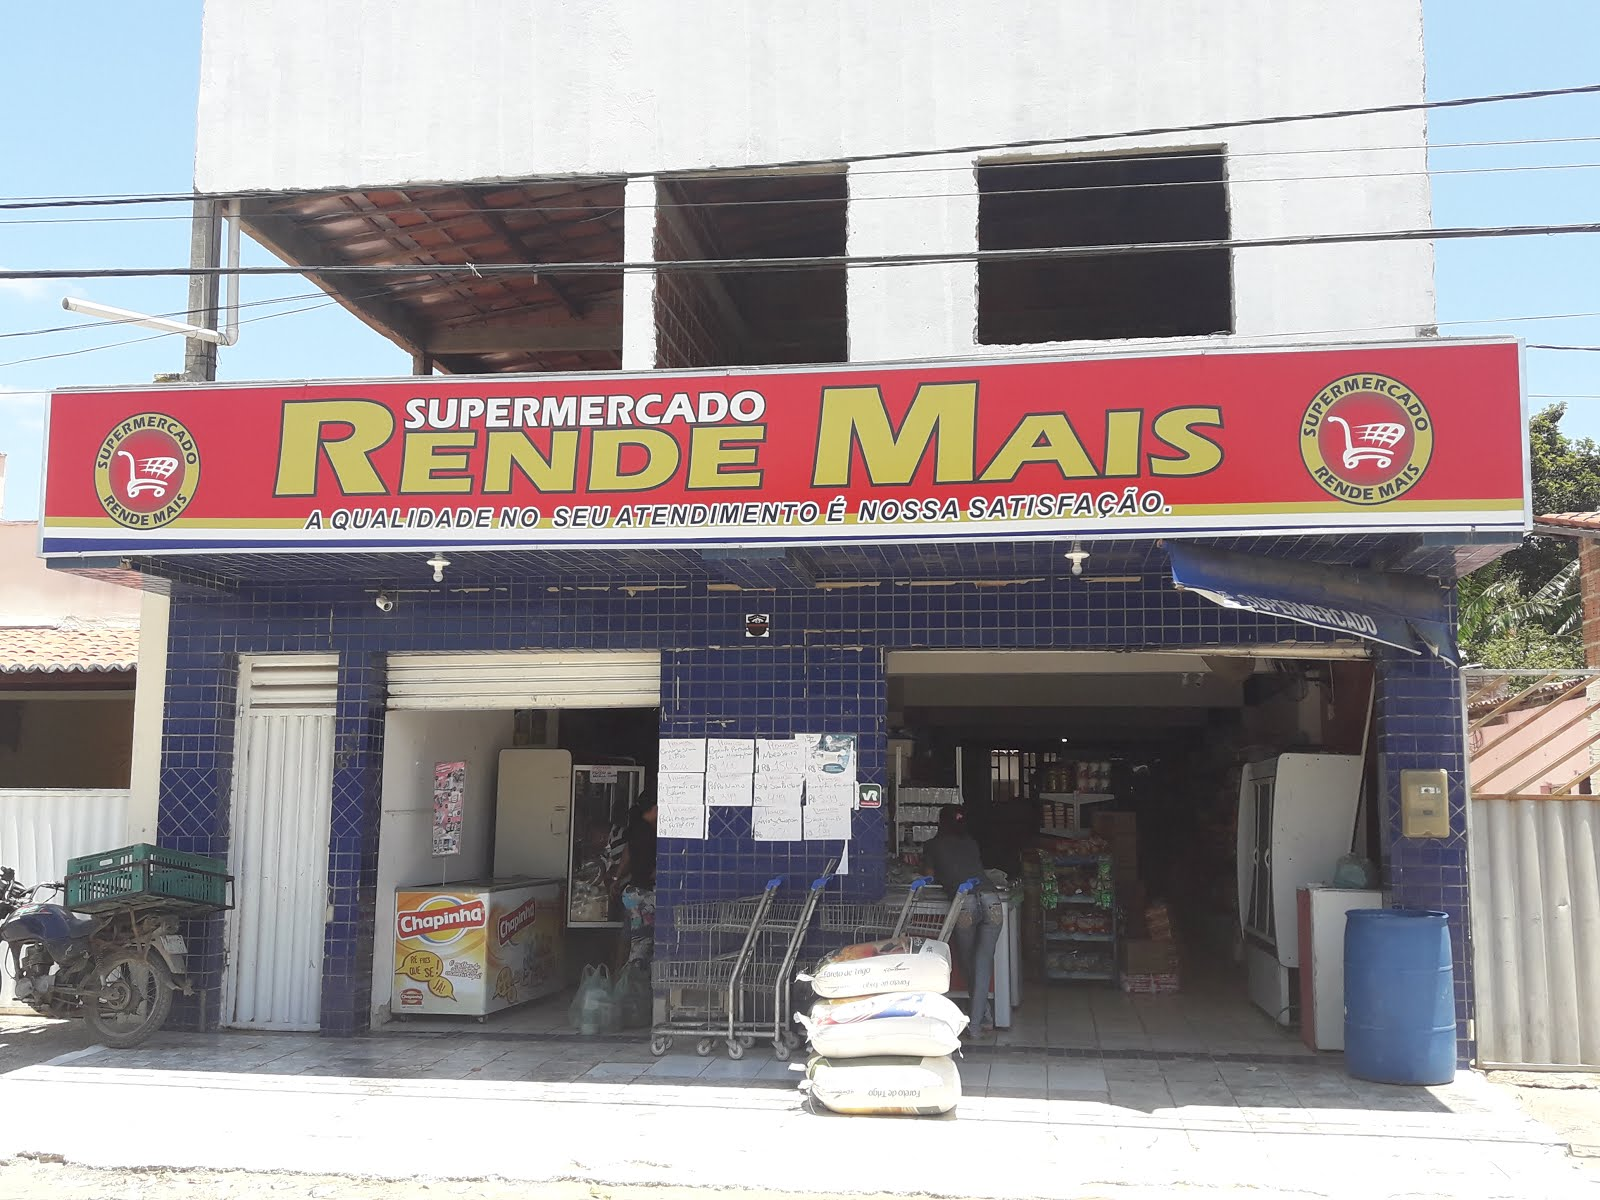 SUPERMERCADO RENDE MAIS